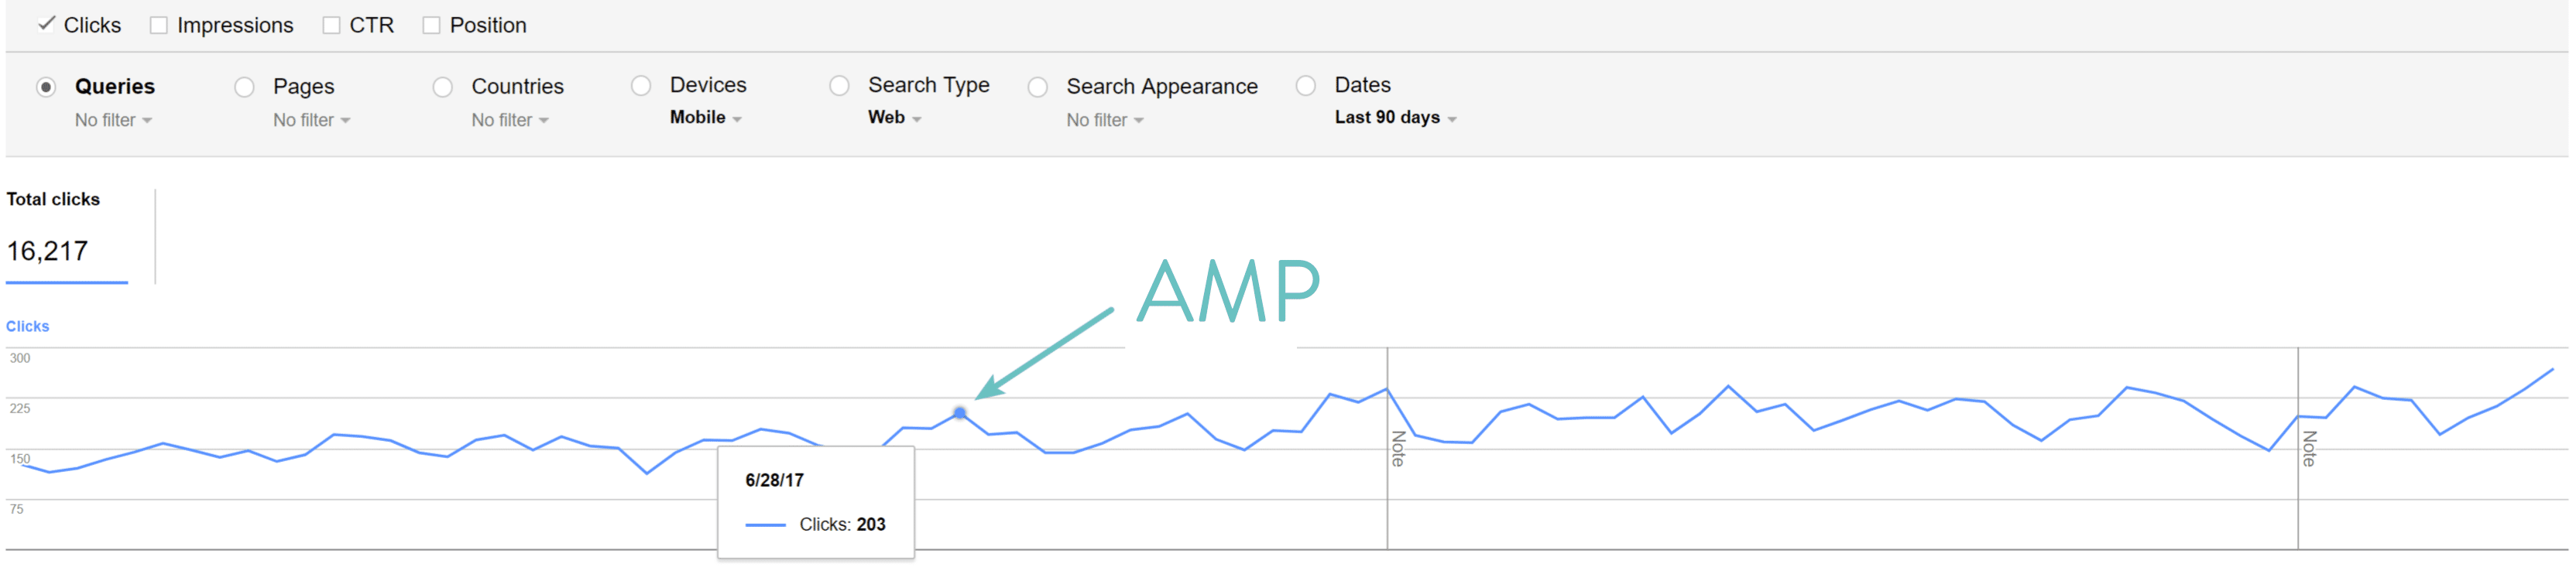 Google AMP clicks